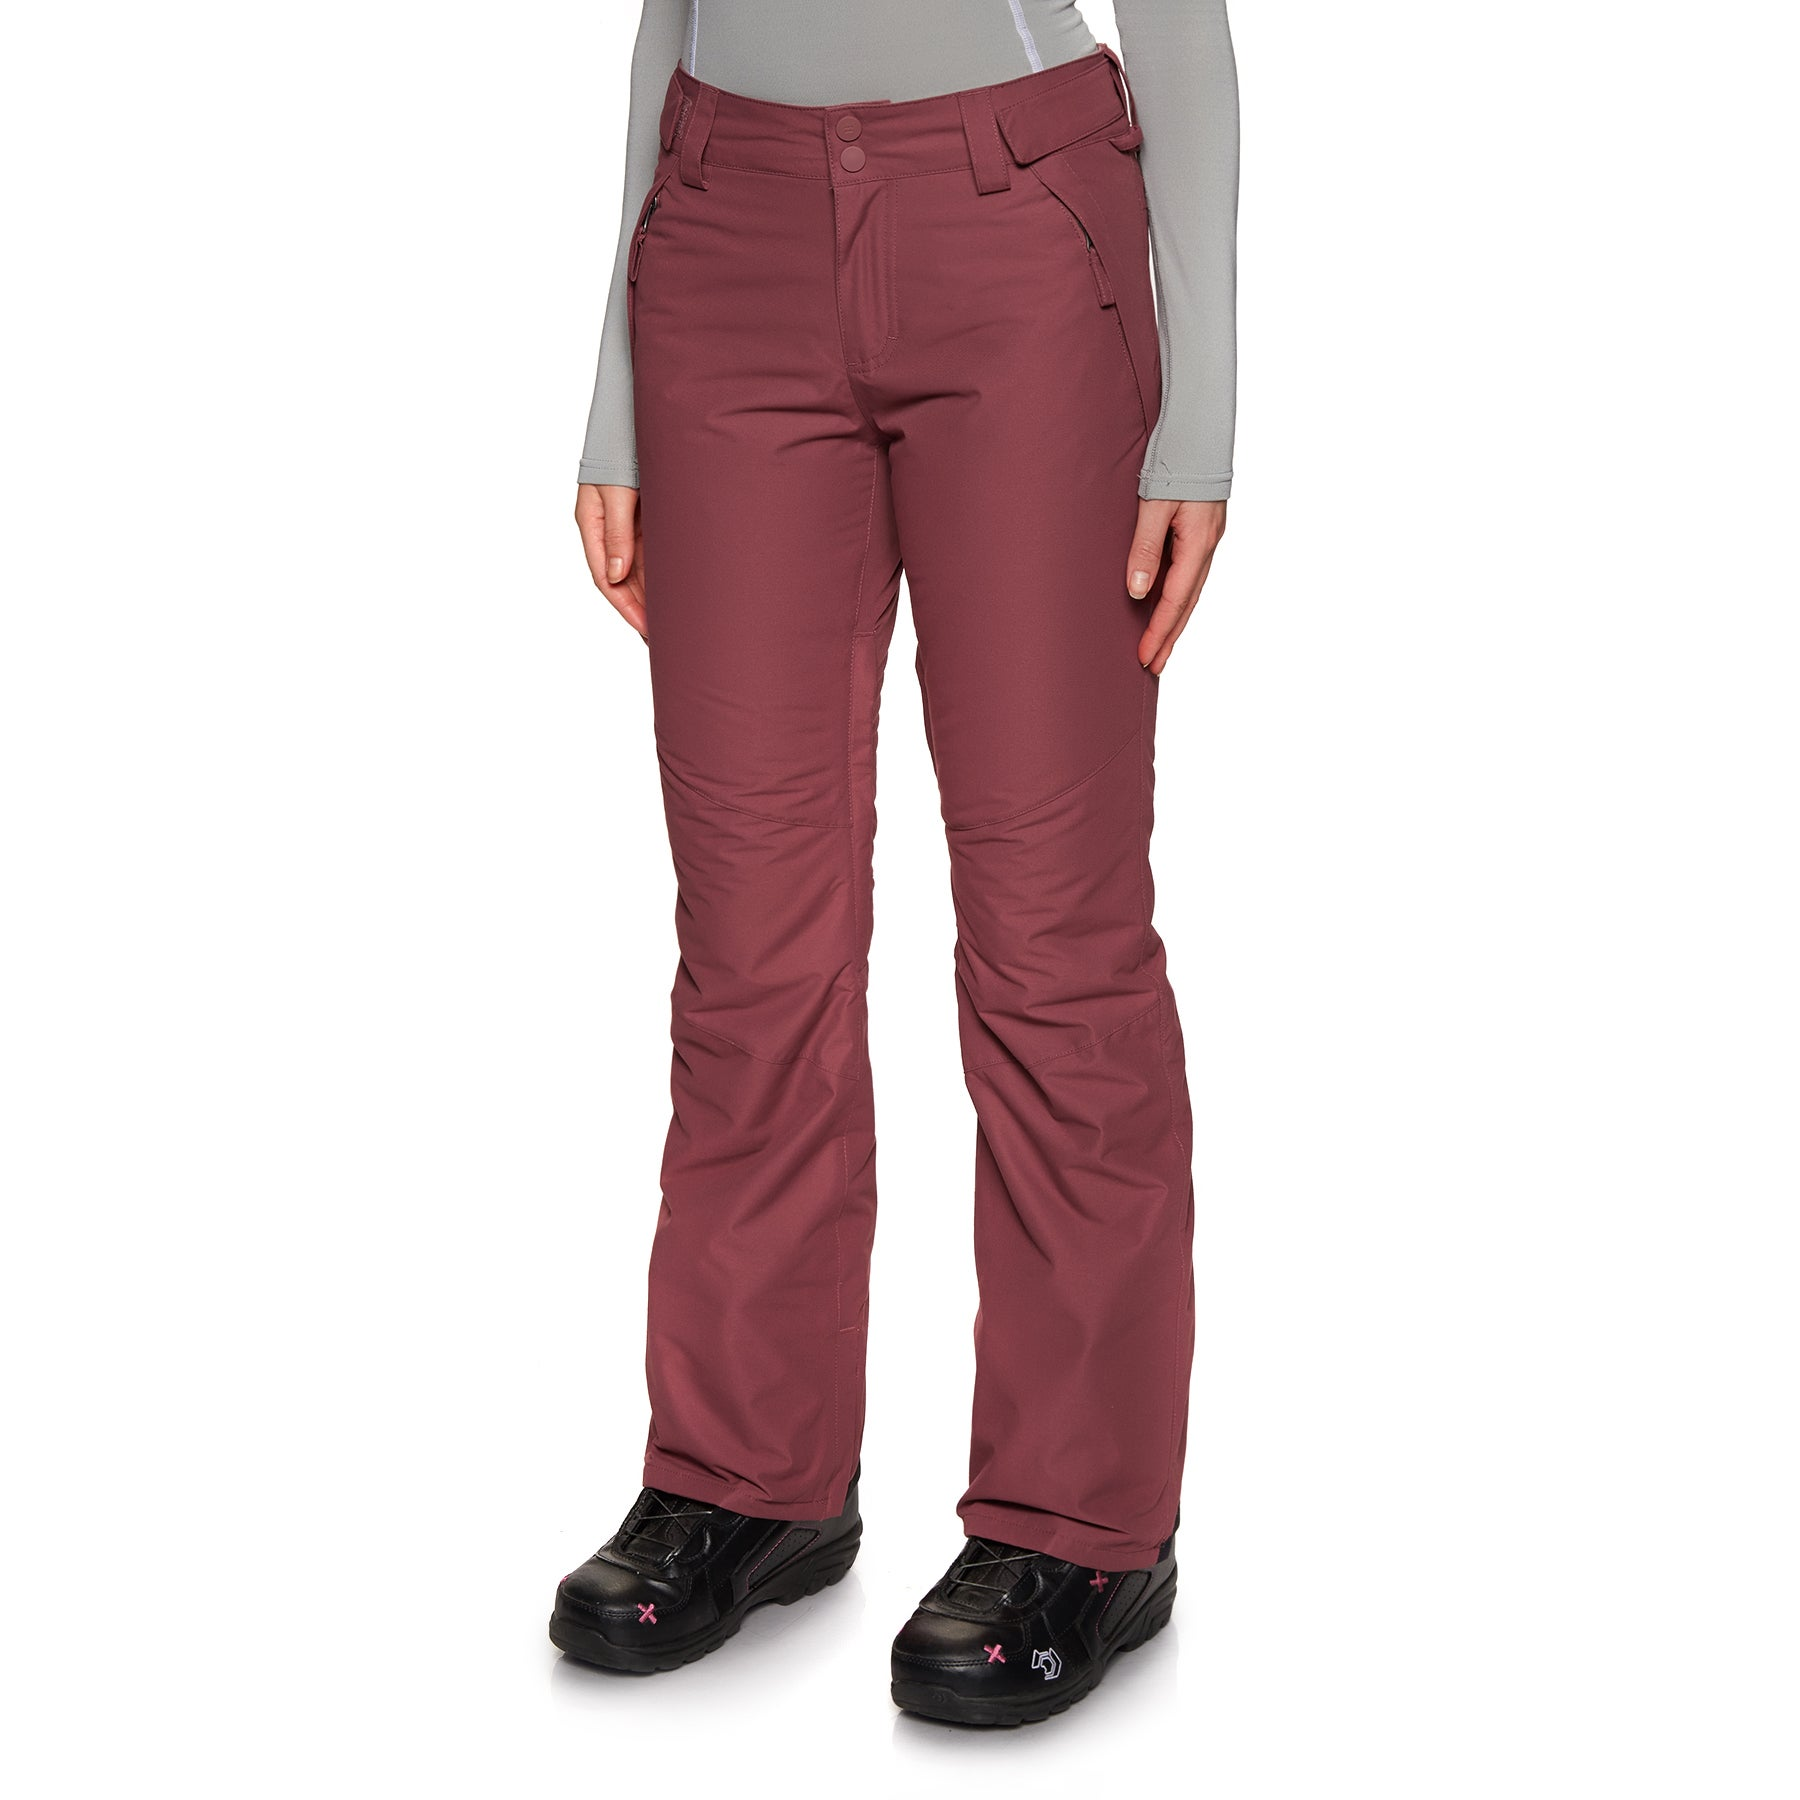 20d7ab873 Billabong Malla Womens Snow Pant available from Surfdome